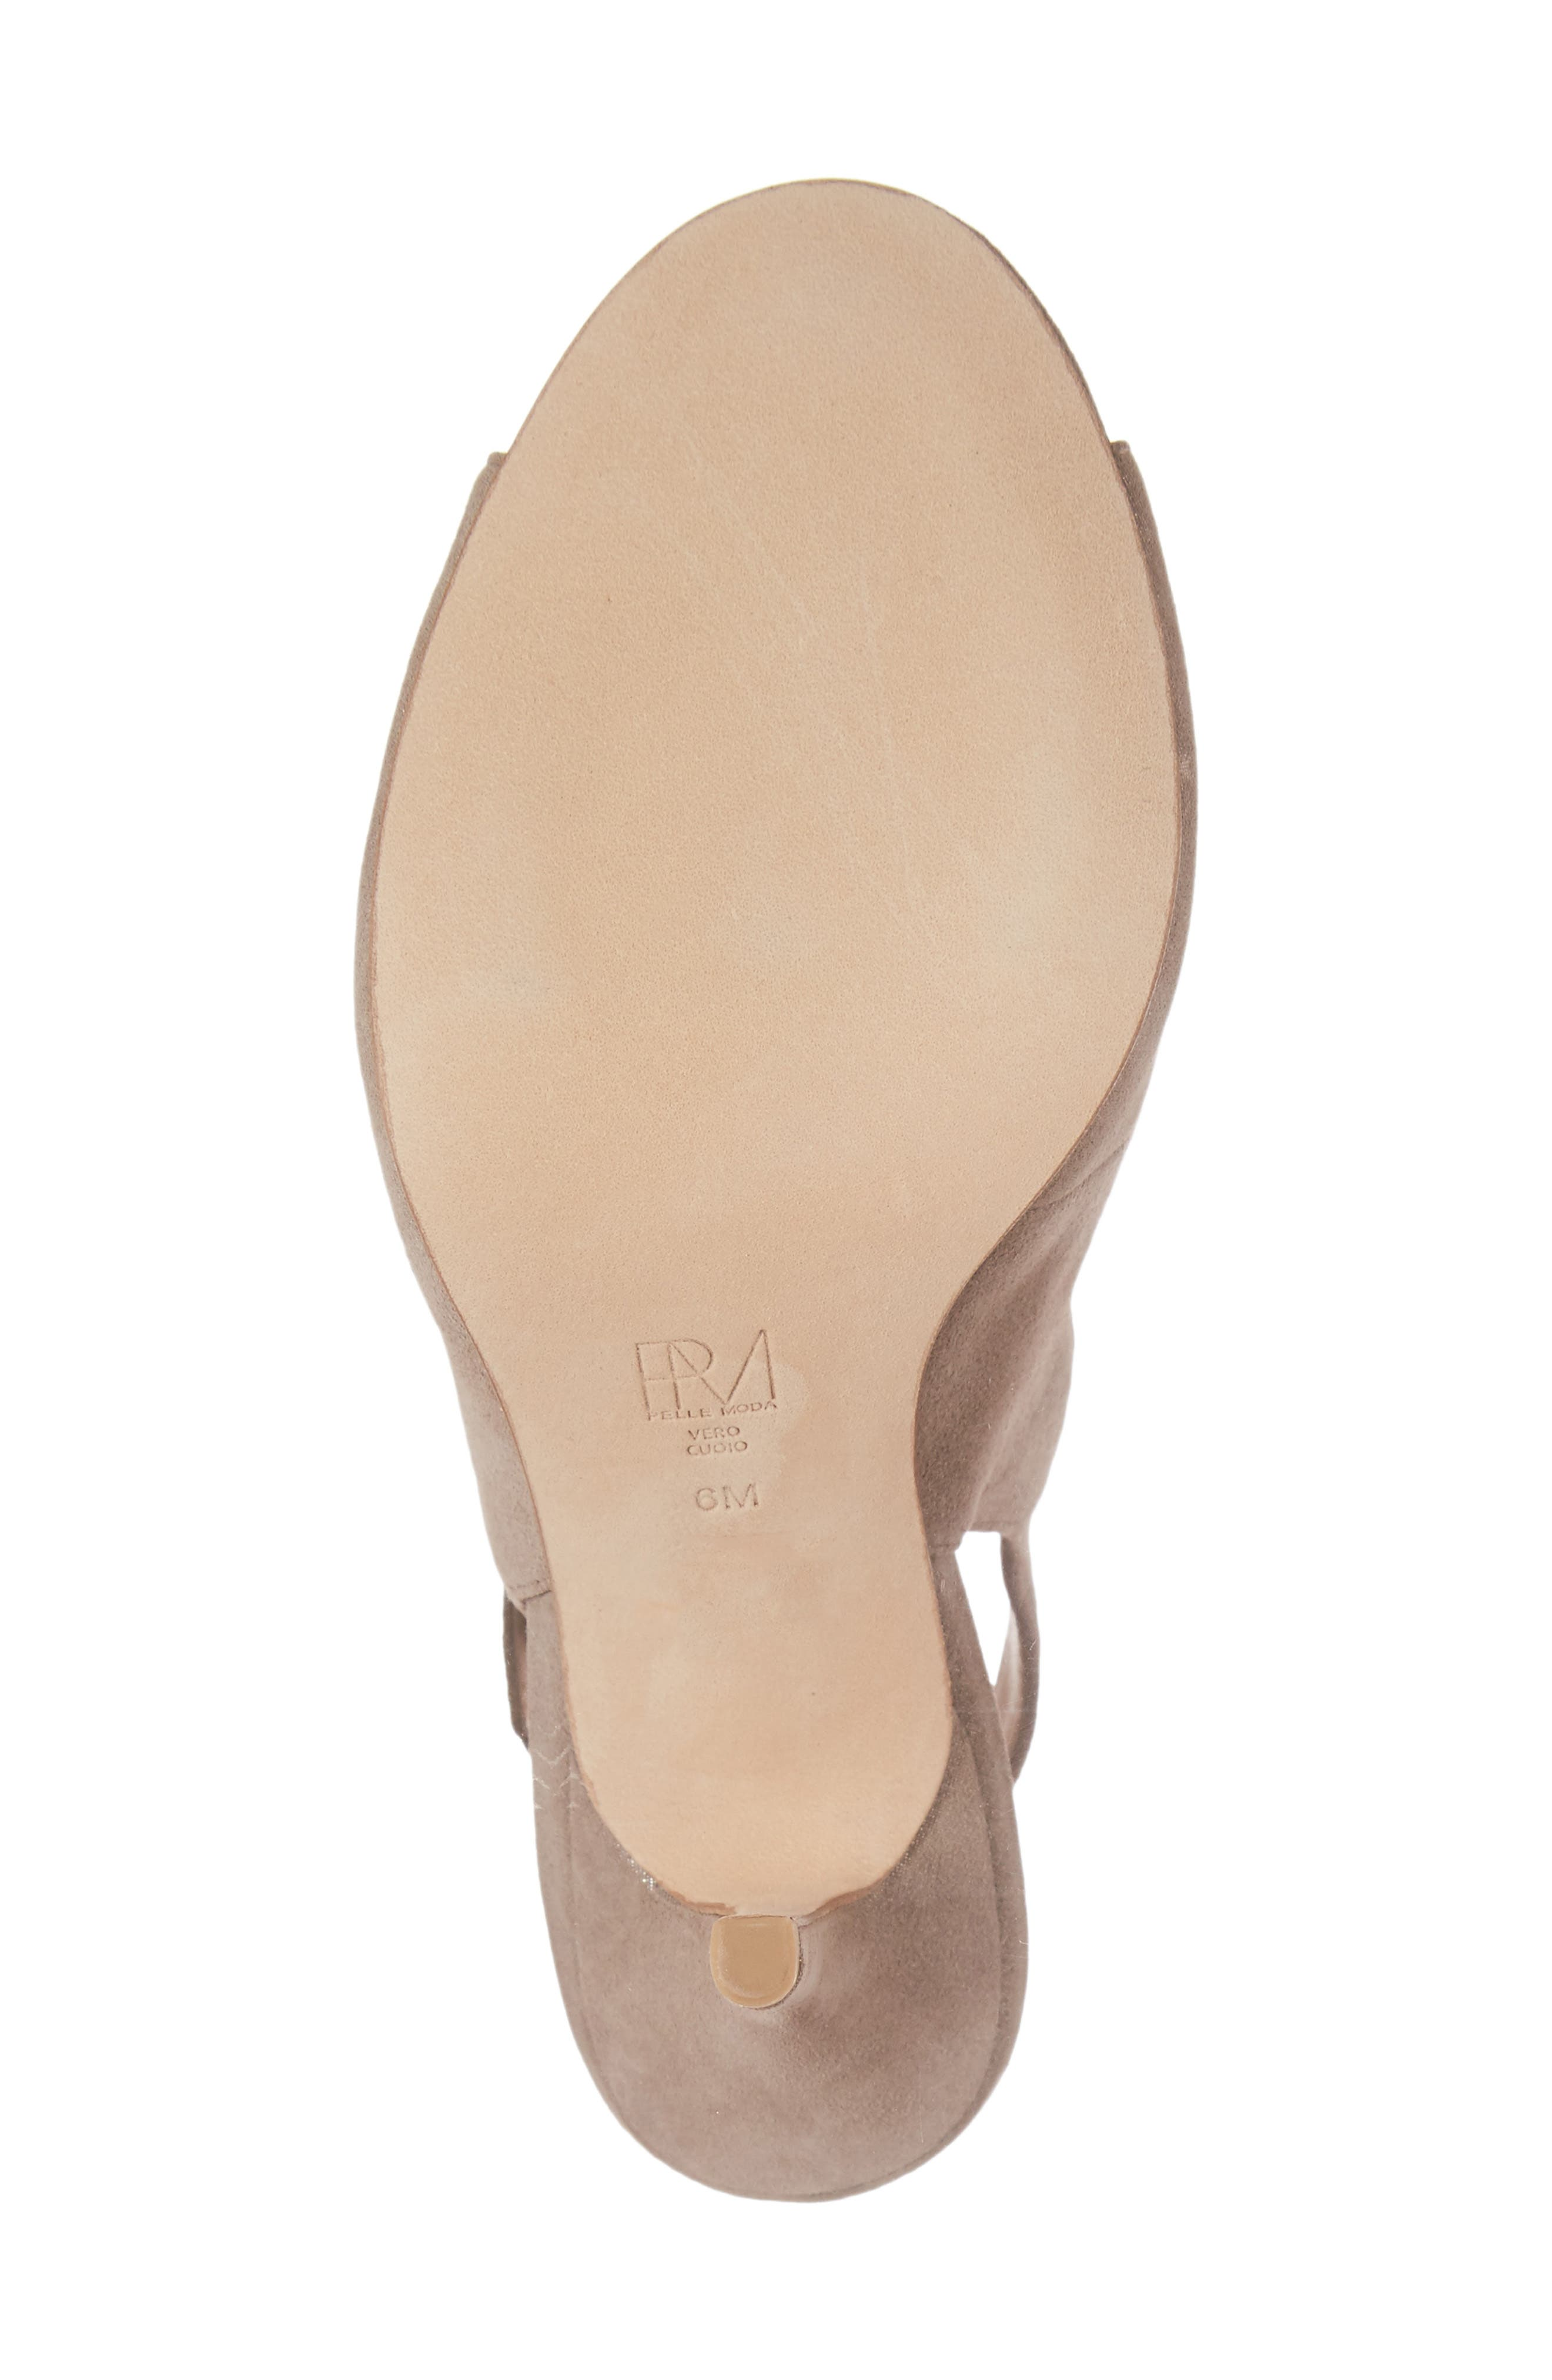 Kinsey Sandal,                             Alternate thumbnail 6, color,                             TAUPE LEATHER